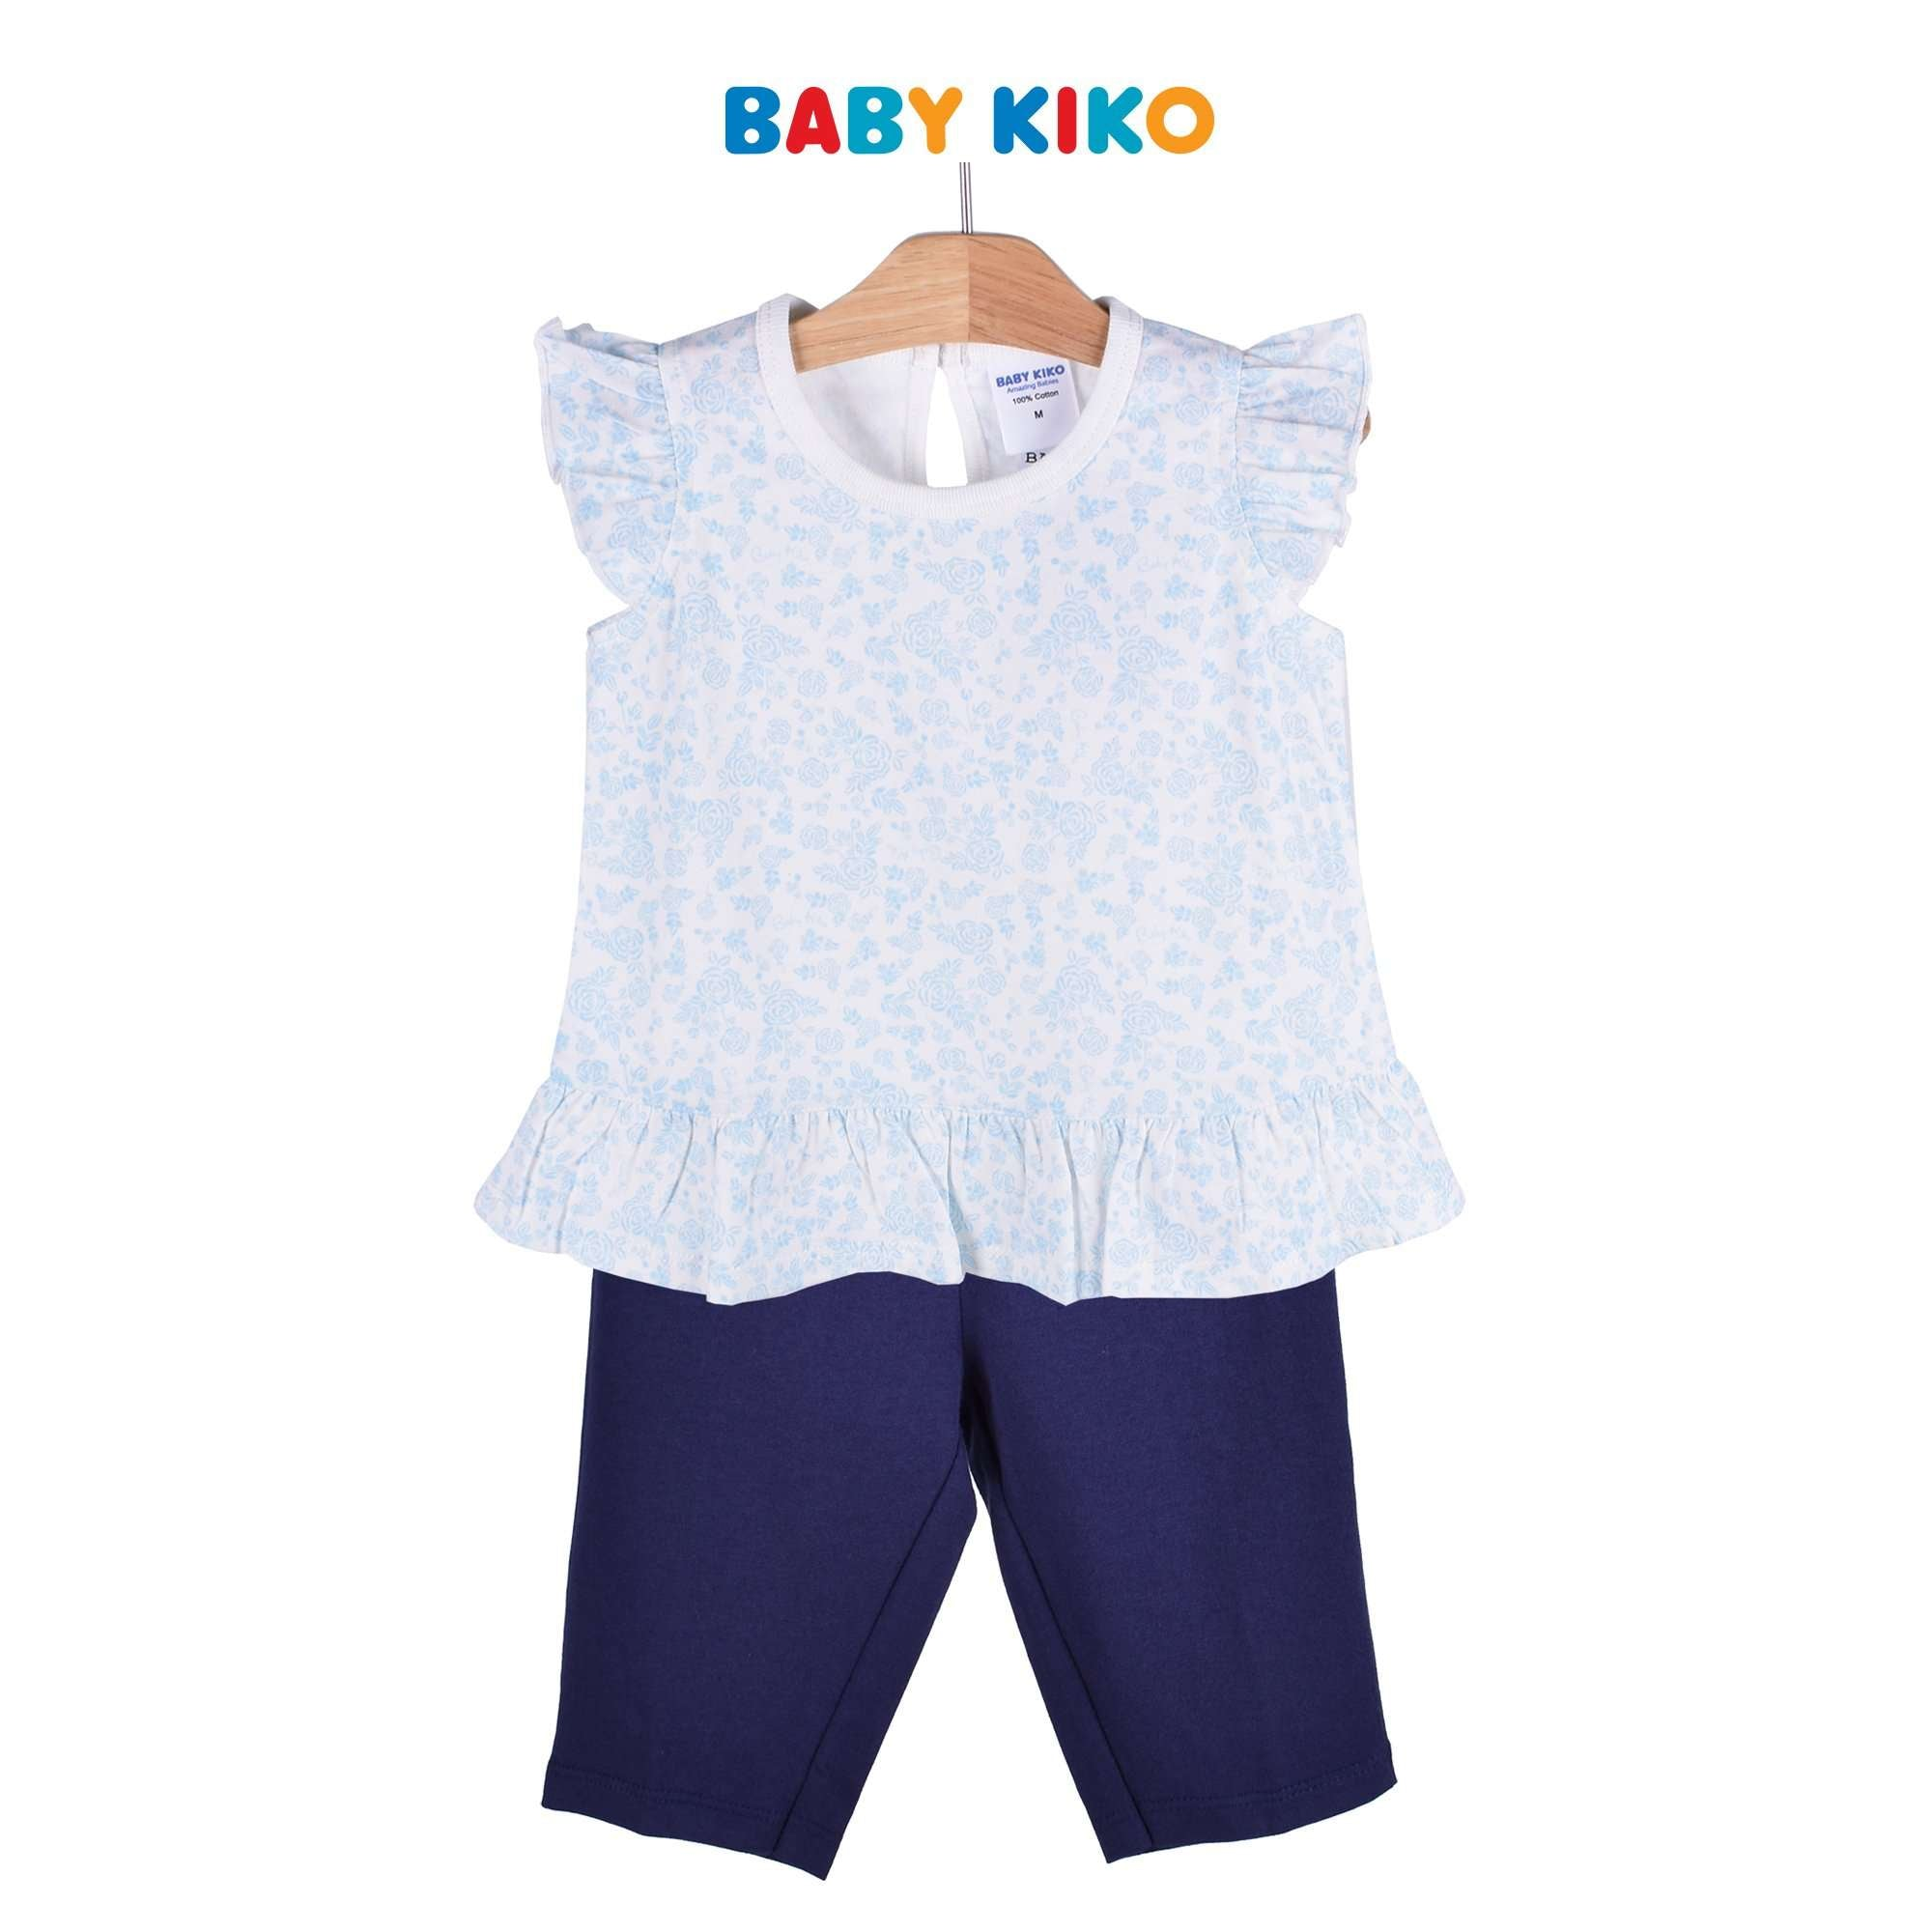 Baby KIKO Toddler Girl Sleeveless Blouse Pants Suit - White 325131-402 : Buy Baby KIKO online at CMG.MY